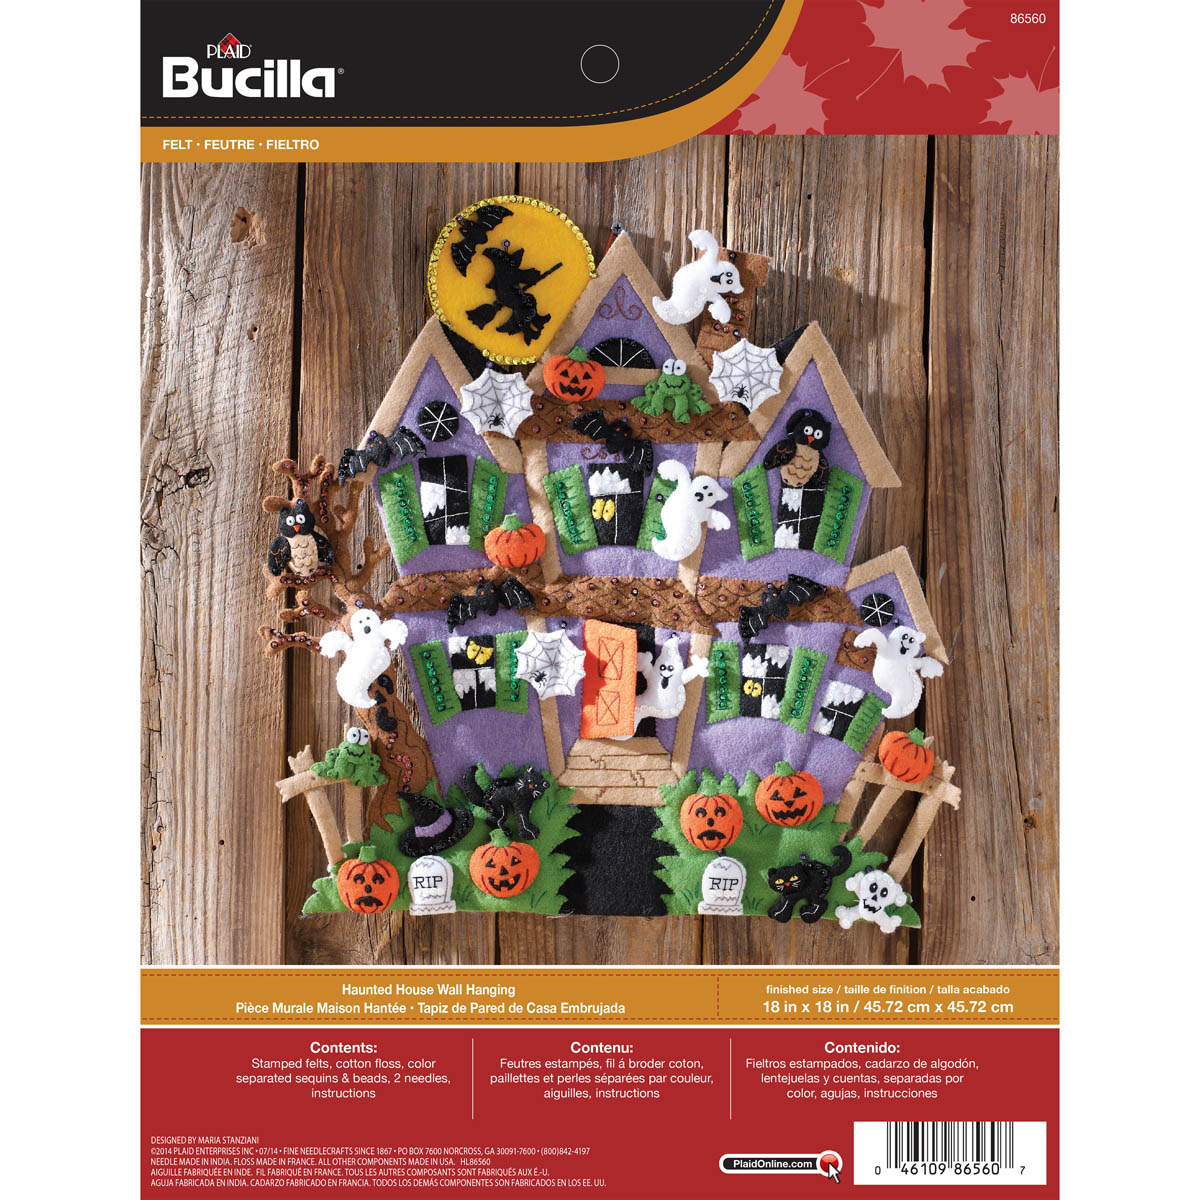 86560 Haunted House 18 by 18-Inch Bucilla Felt Applique Wall Hanging Kit